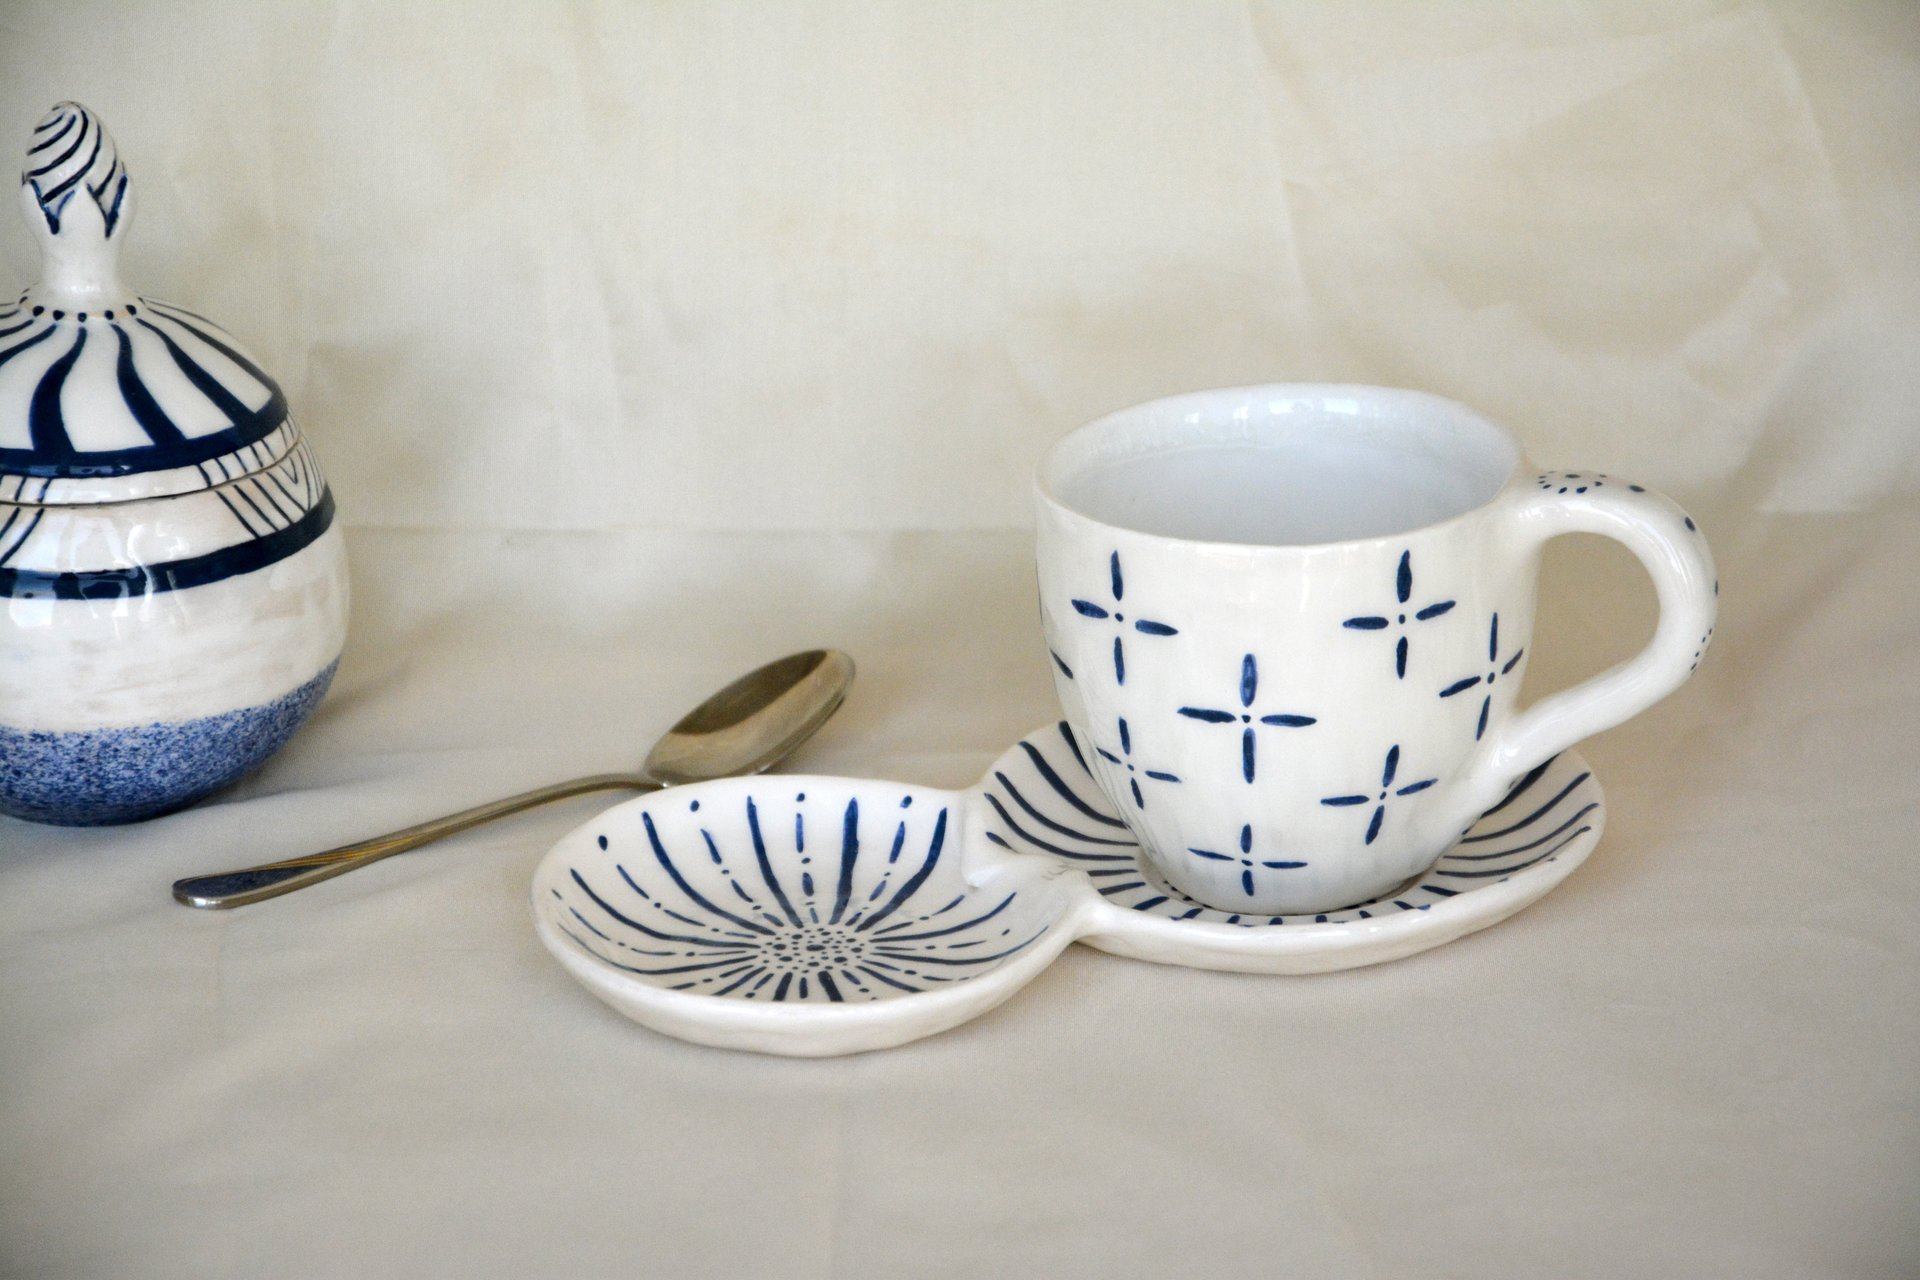 White with blue pattern Crosses - Cups, glasses, mugs, height - 7,5 cm, volume - 250 ml, photo 3 of 4.